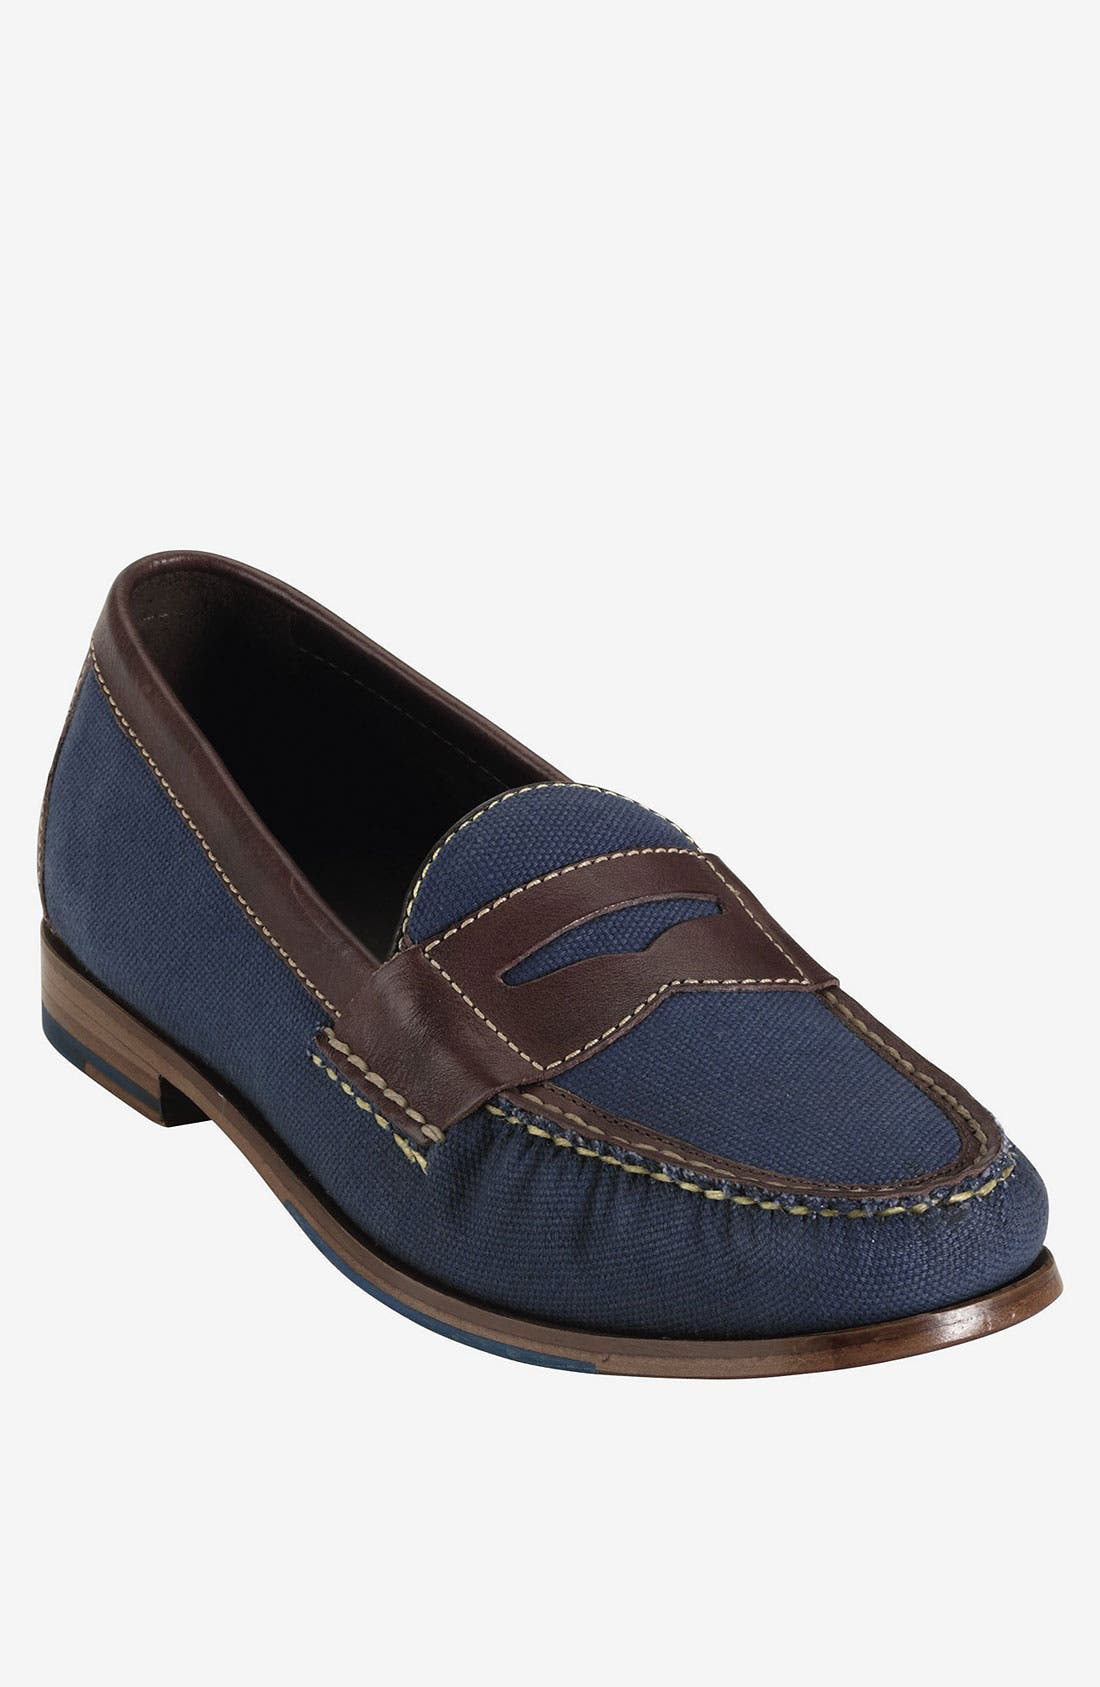 Main Image - Cole Haan 'Pinch Air' Penny Loafer (Online Only)